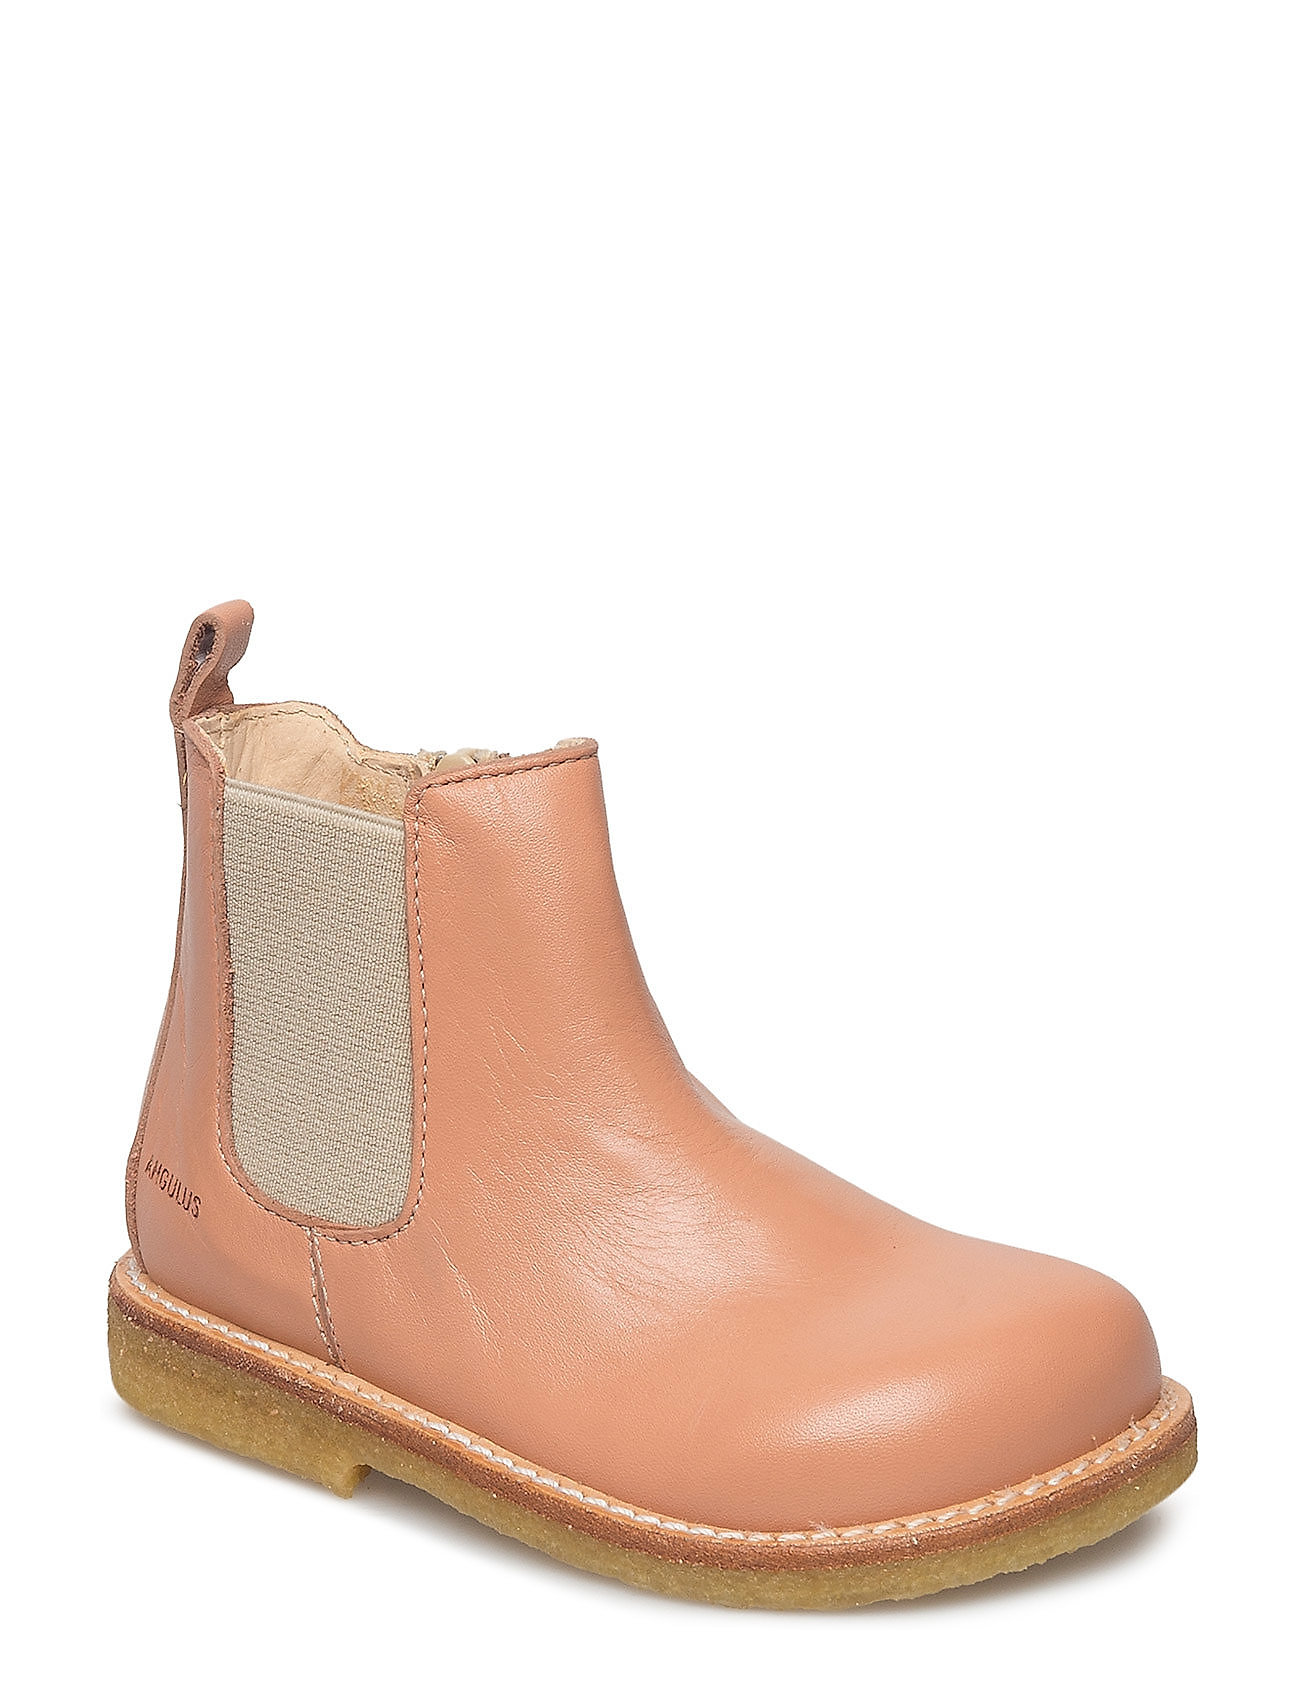 ANGULUS Booties - flat - with zipper - 1533/010 DUSTY PEACH/BEIGE